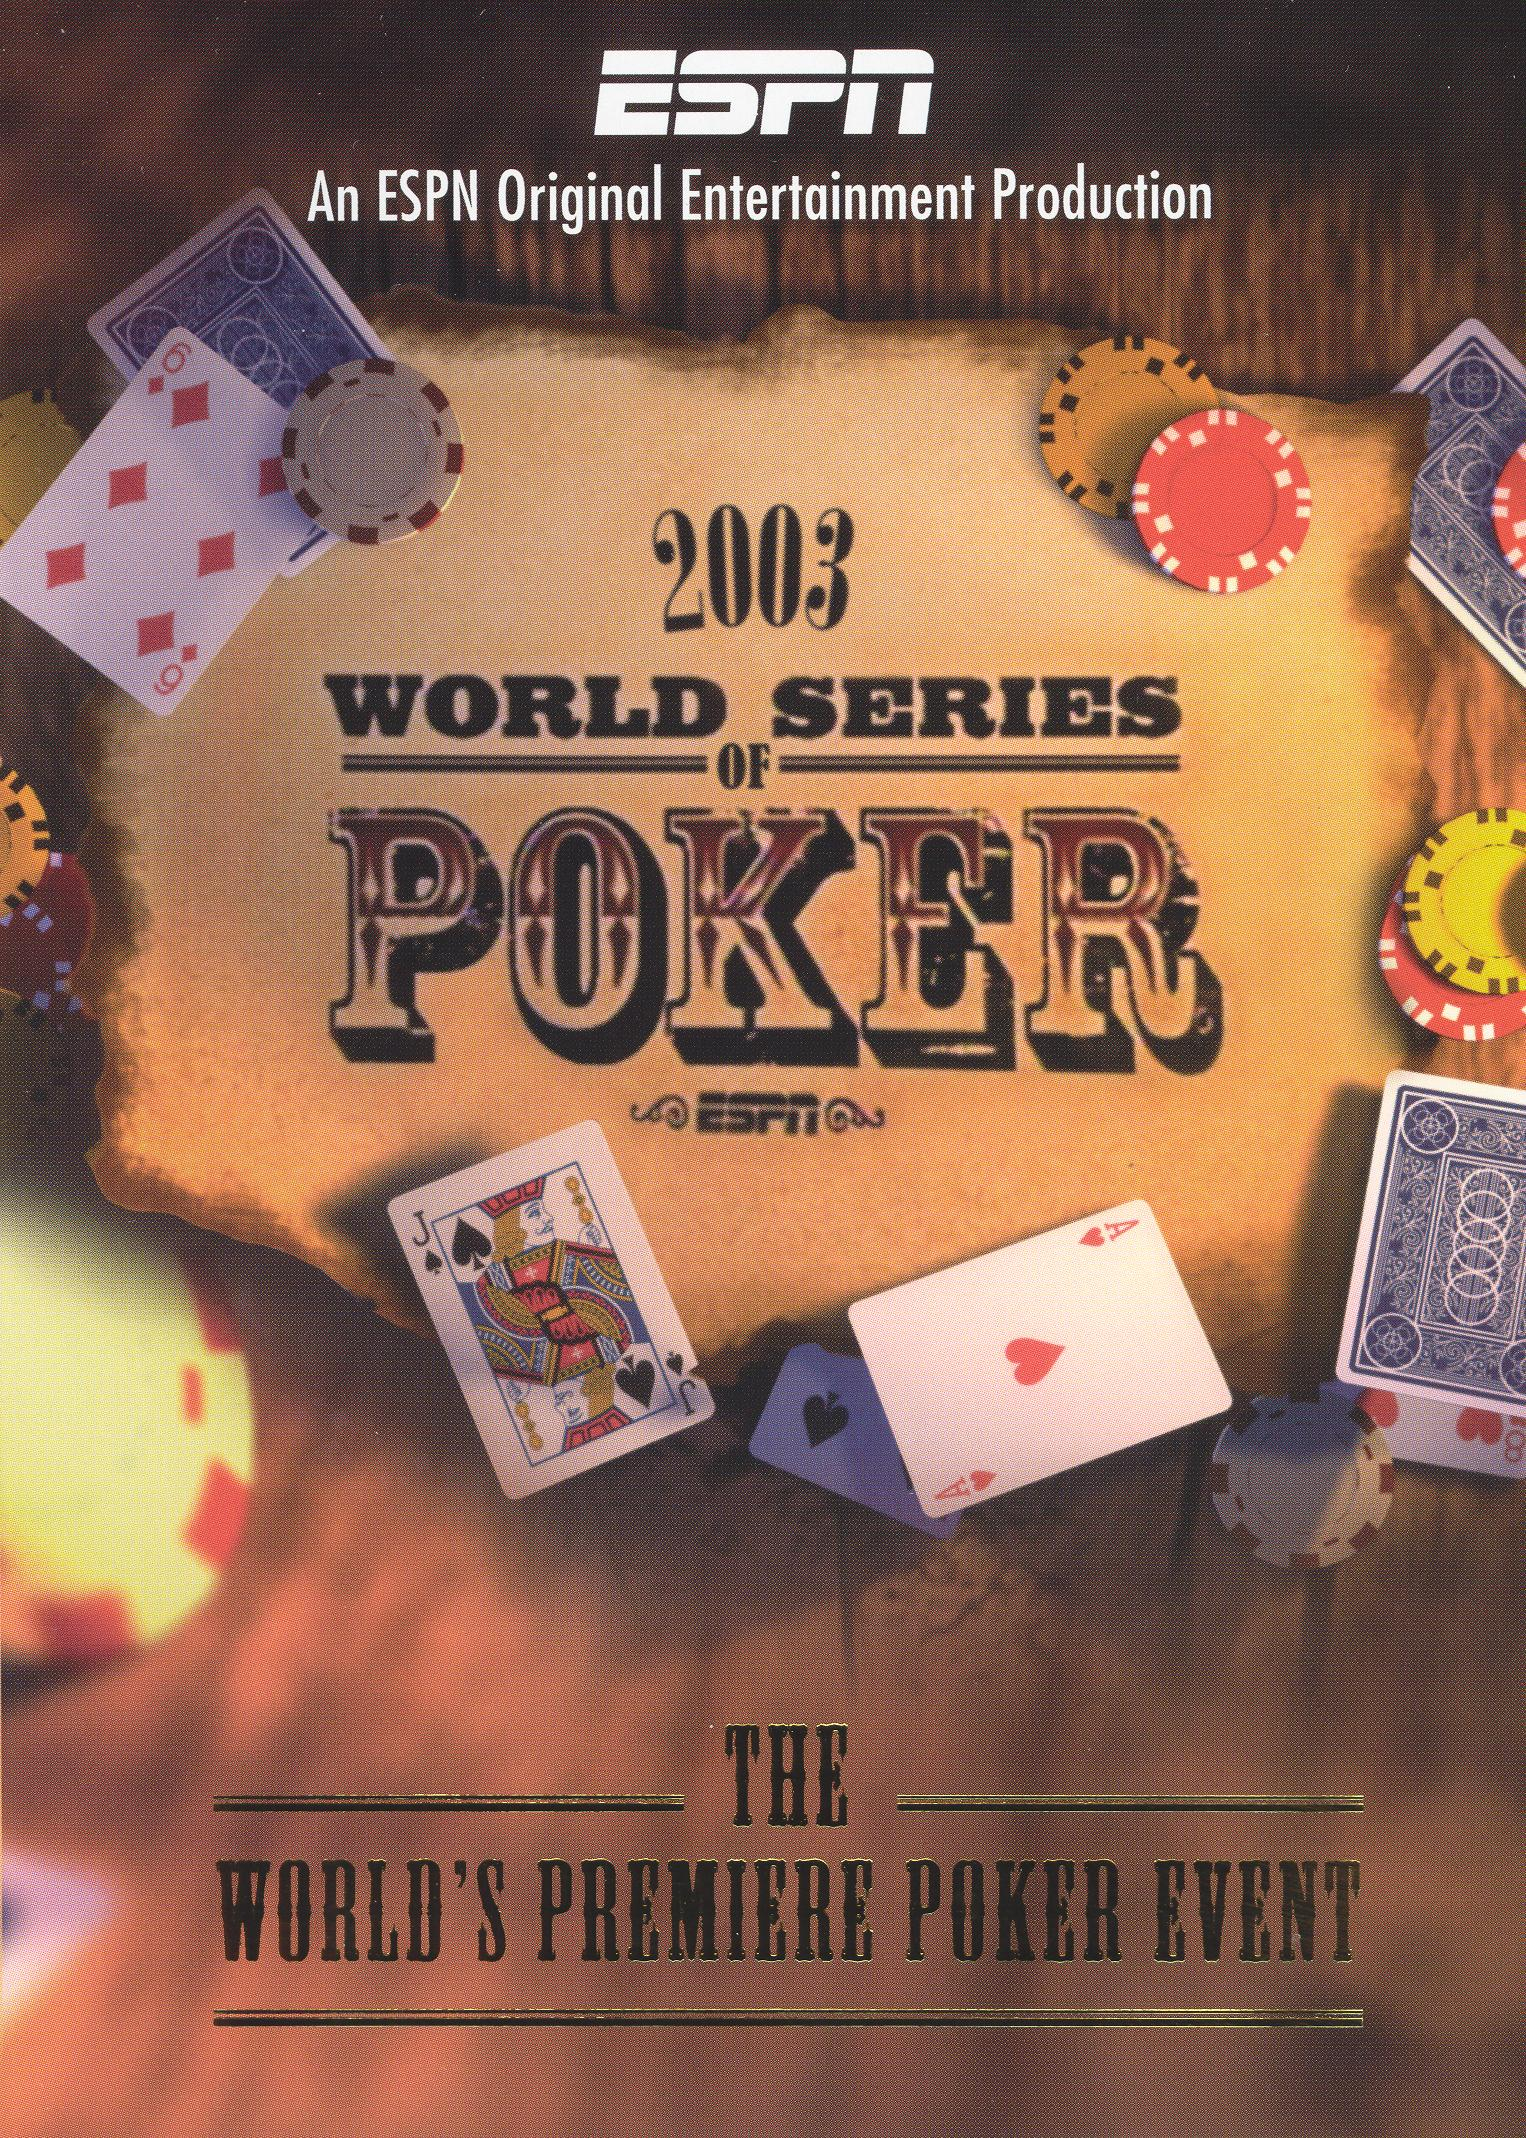 The 2003 World Series of Poker